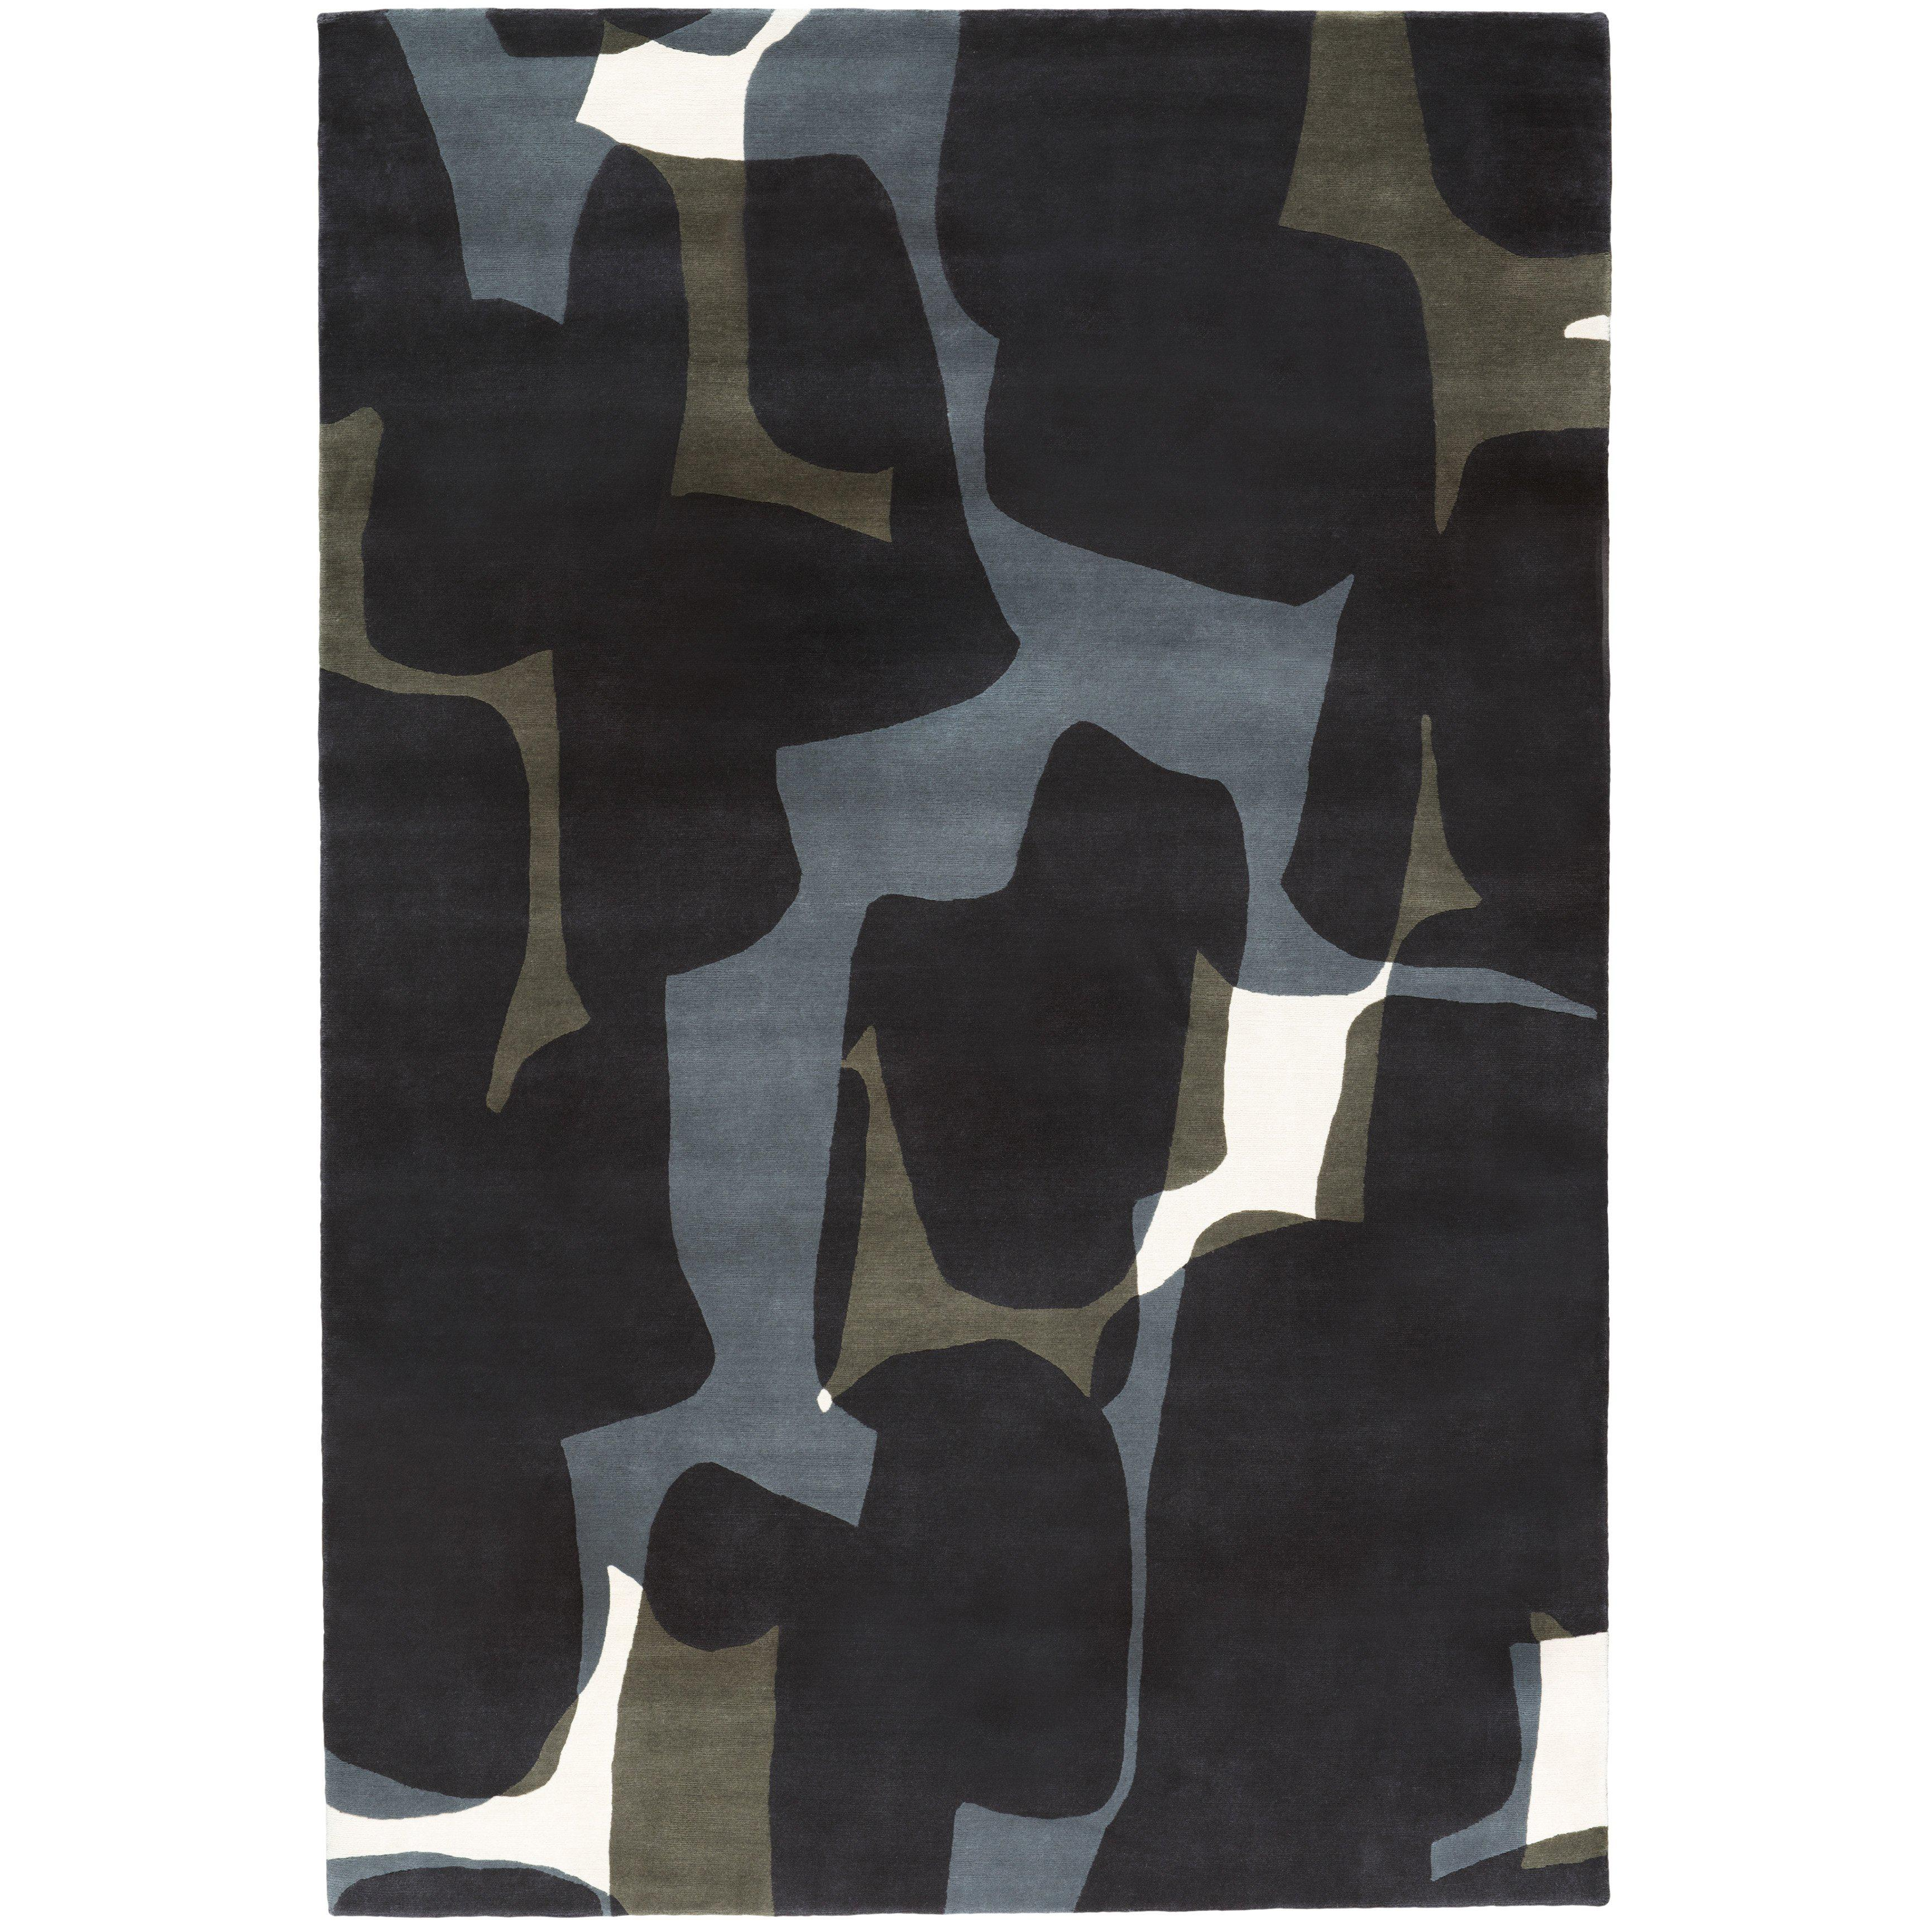 Shadow Hand-Knotted 10x8 Rug in Wool by Alexandra Champalimaud